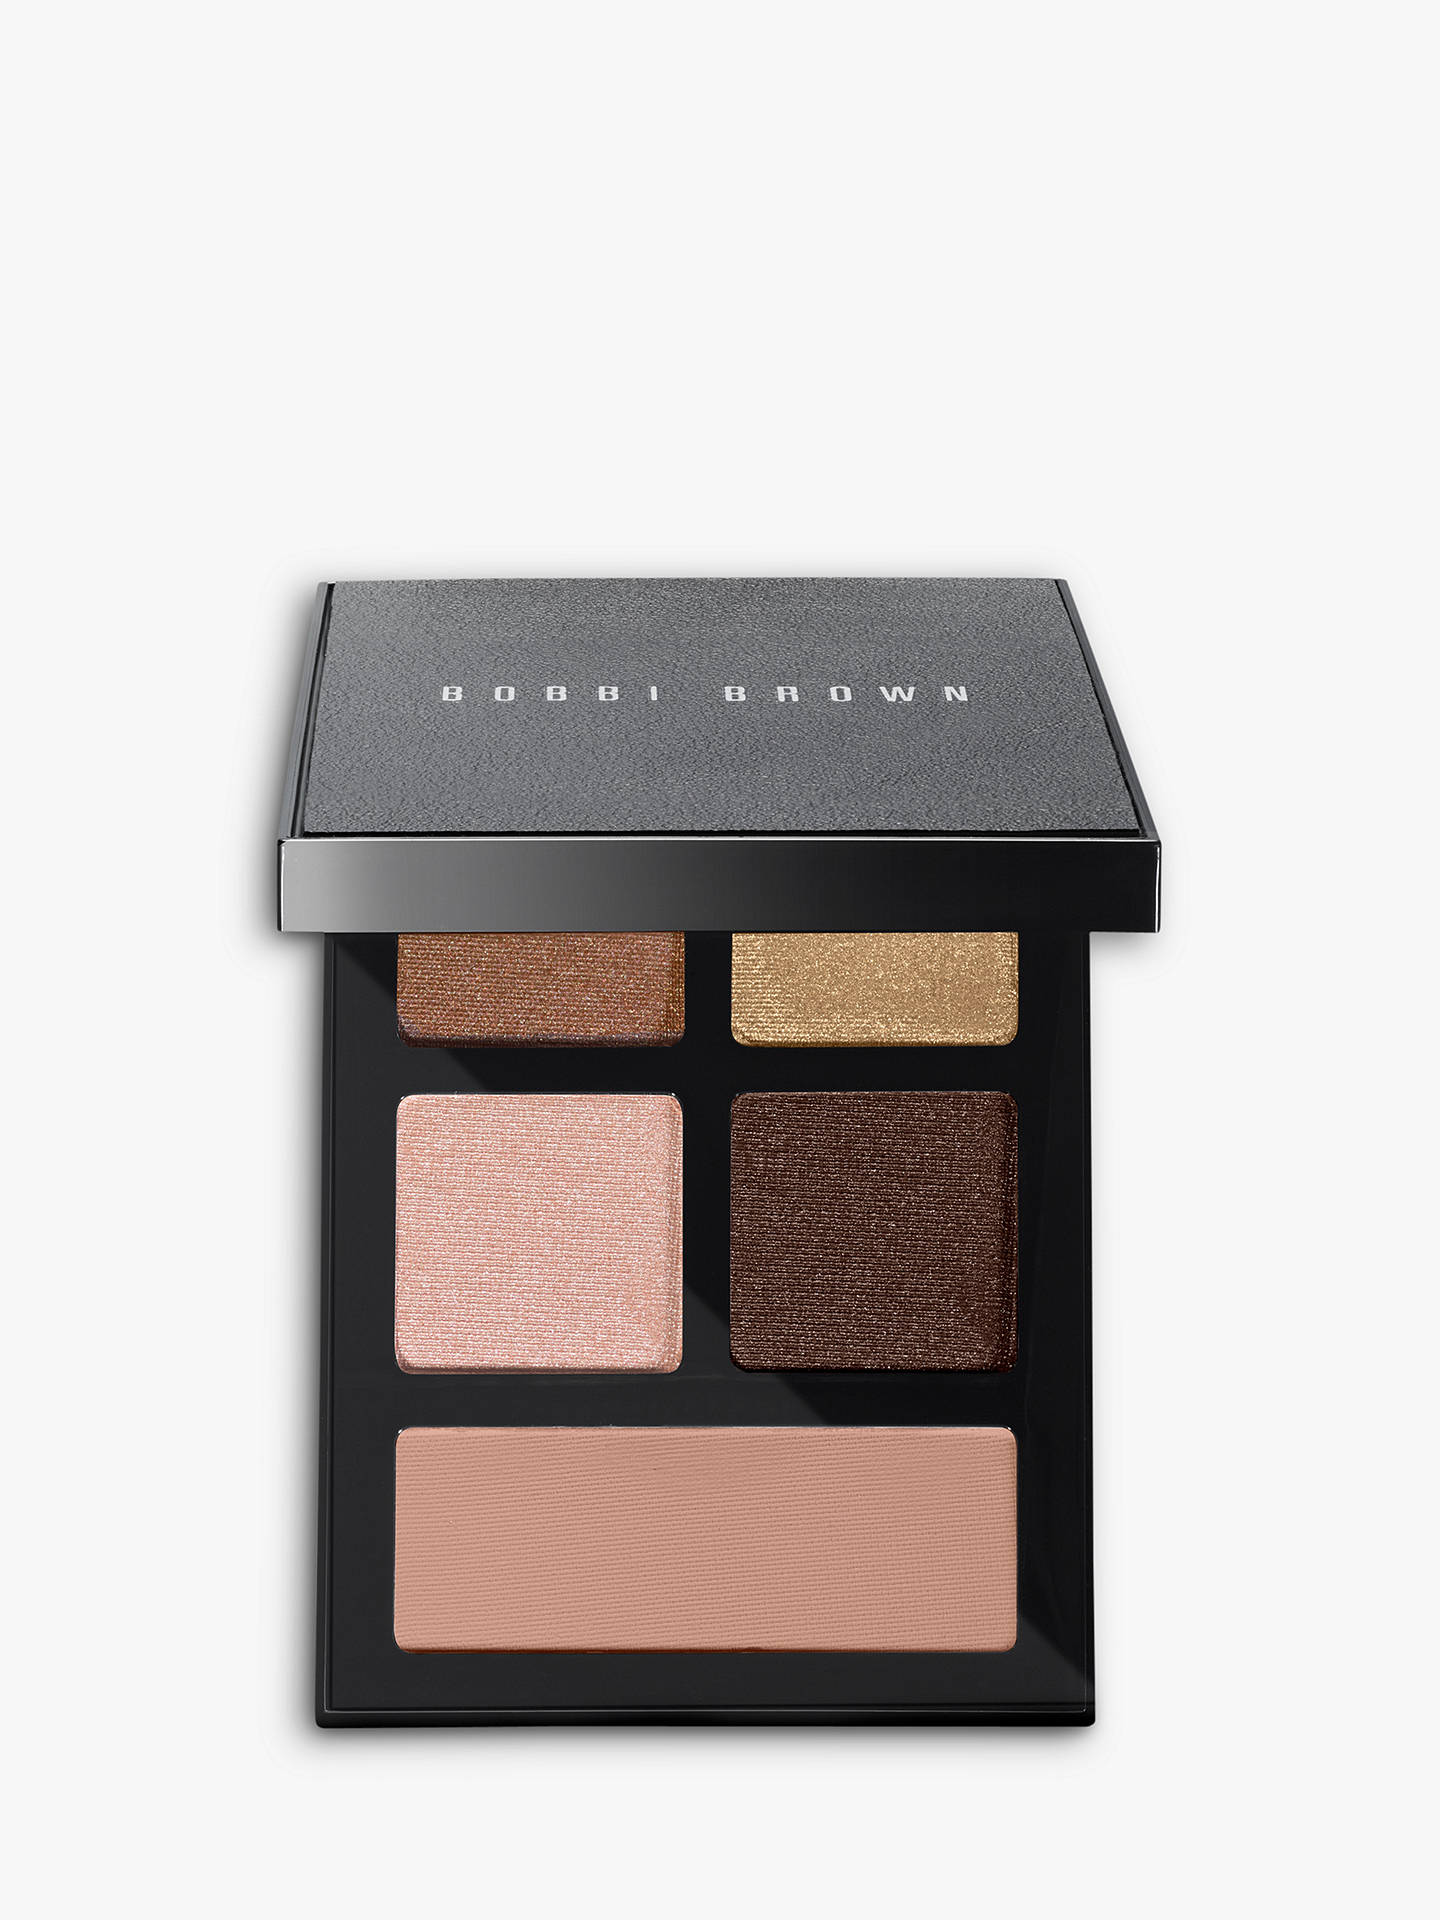 Bobbi Brown The Essential Multicolour Eyeshadow Palette Burnished Bronze